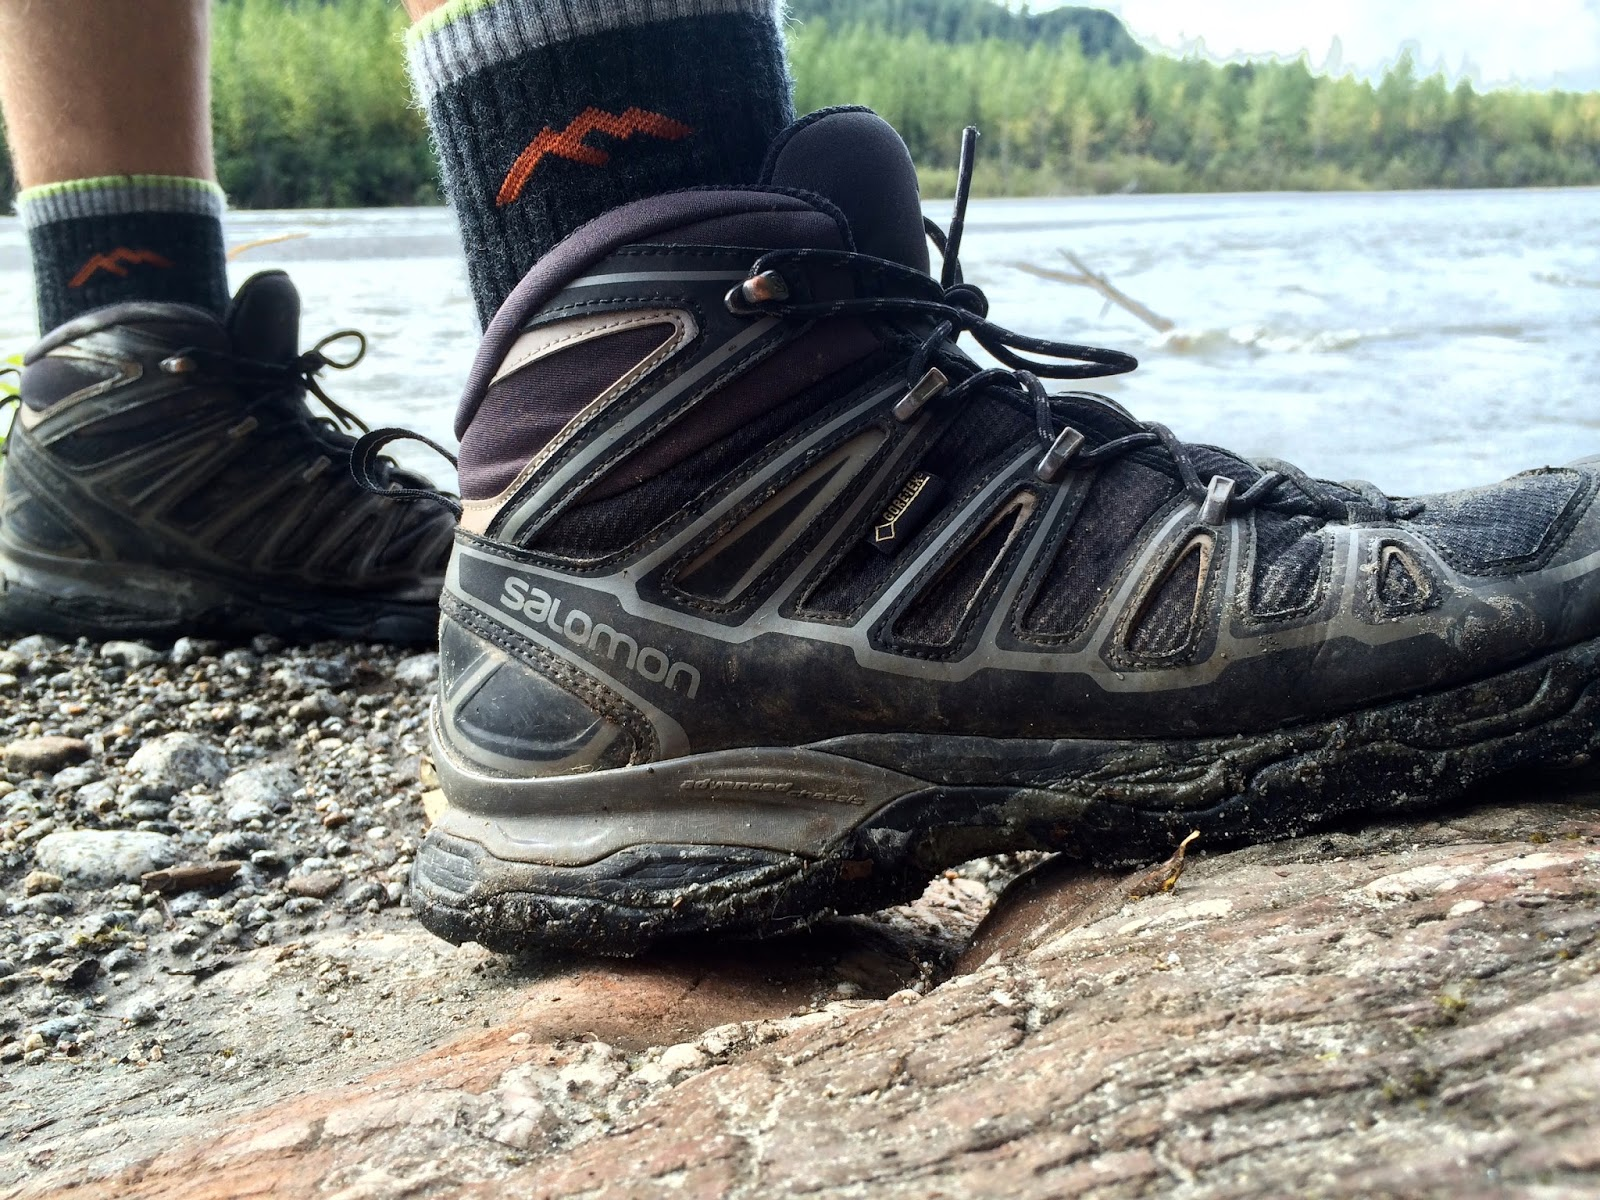 Chris s Gear Review  Salomon X Ultra Mid II GTX Hiking Boots ab3337cf566b